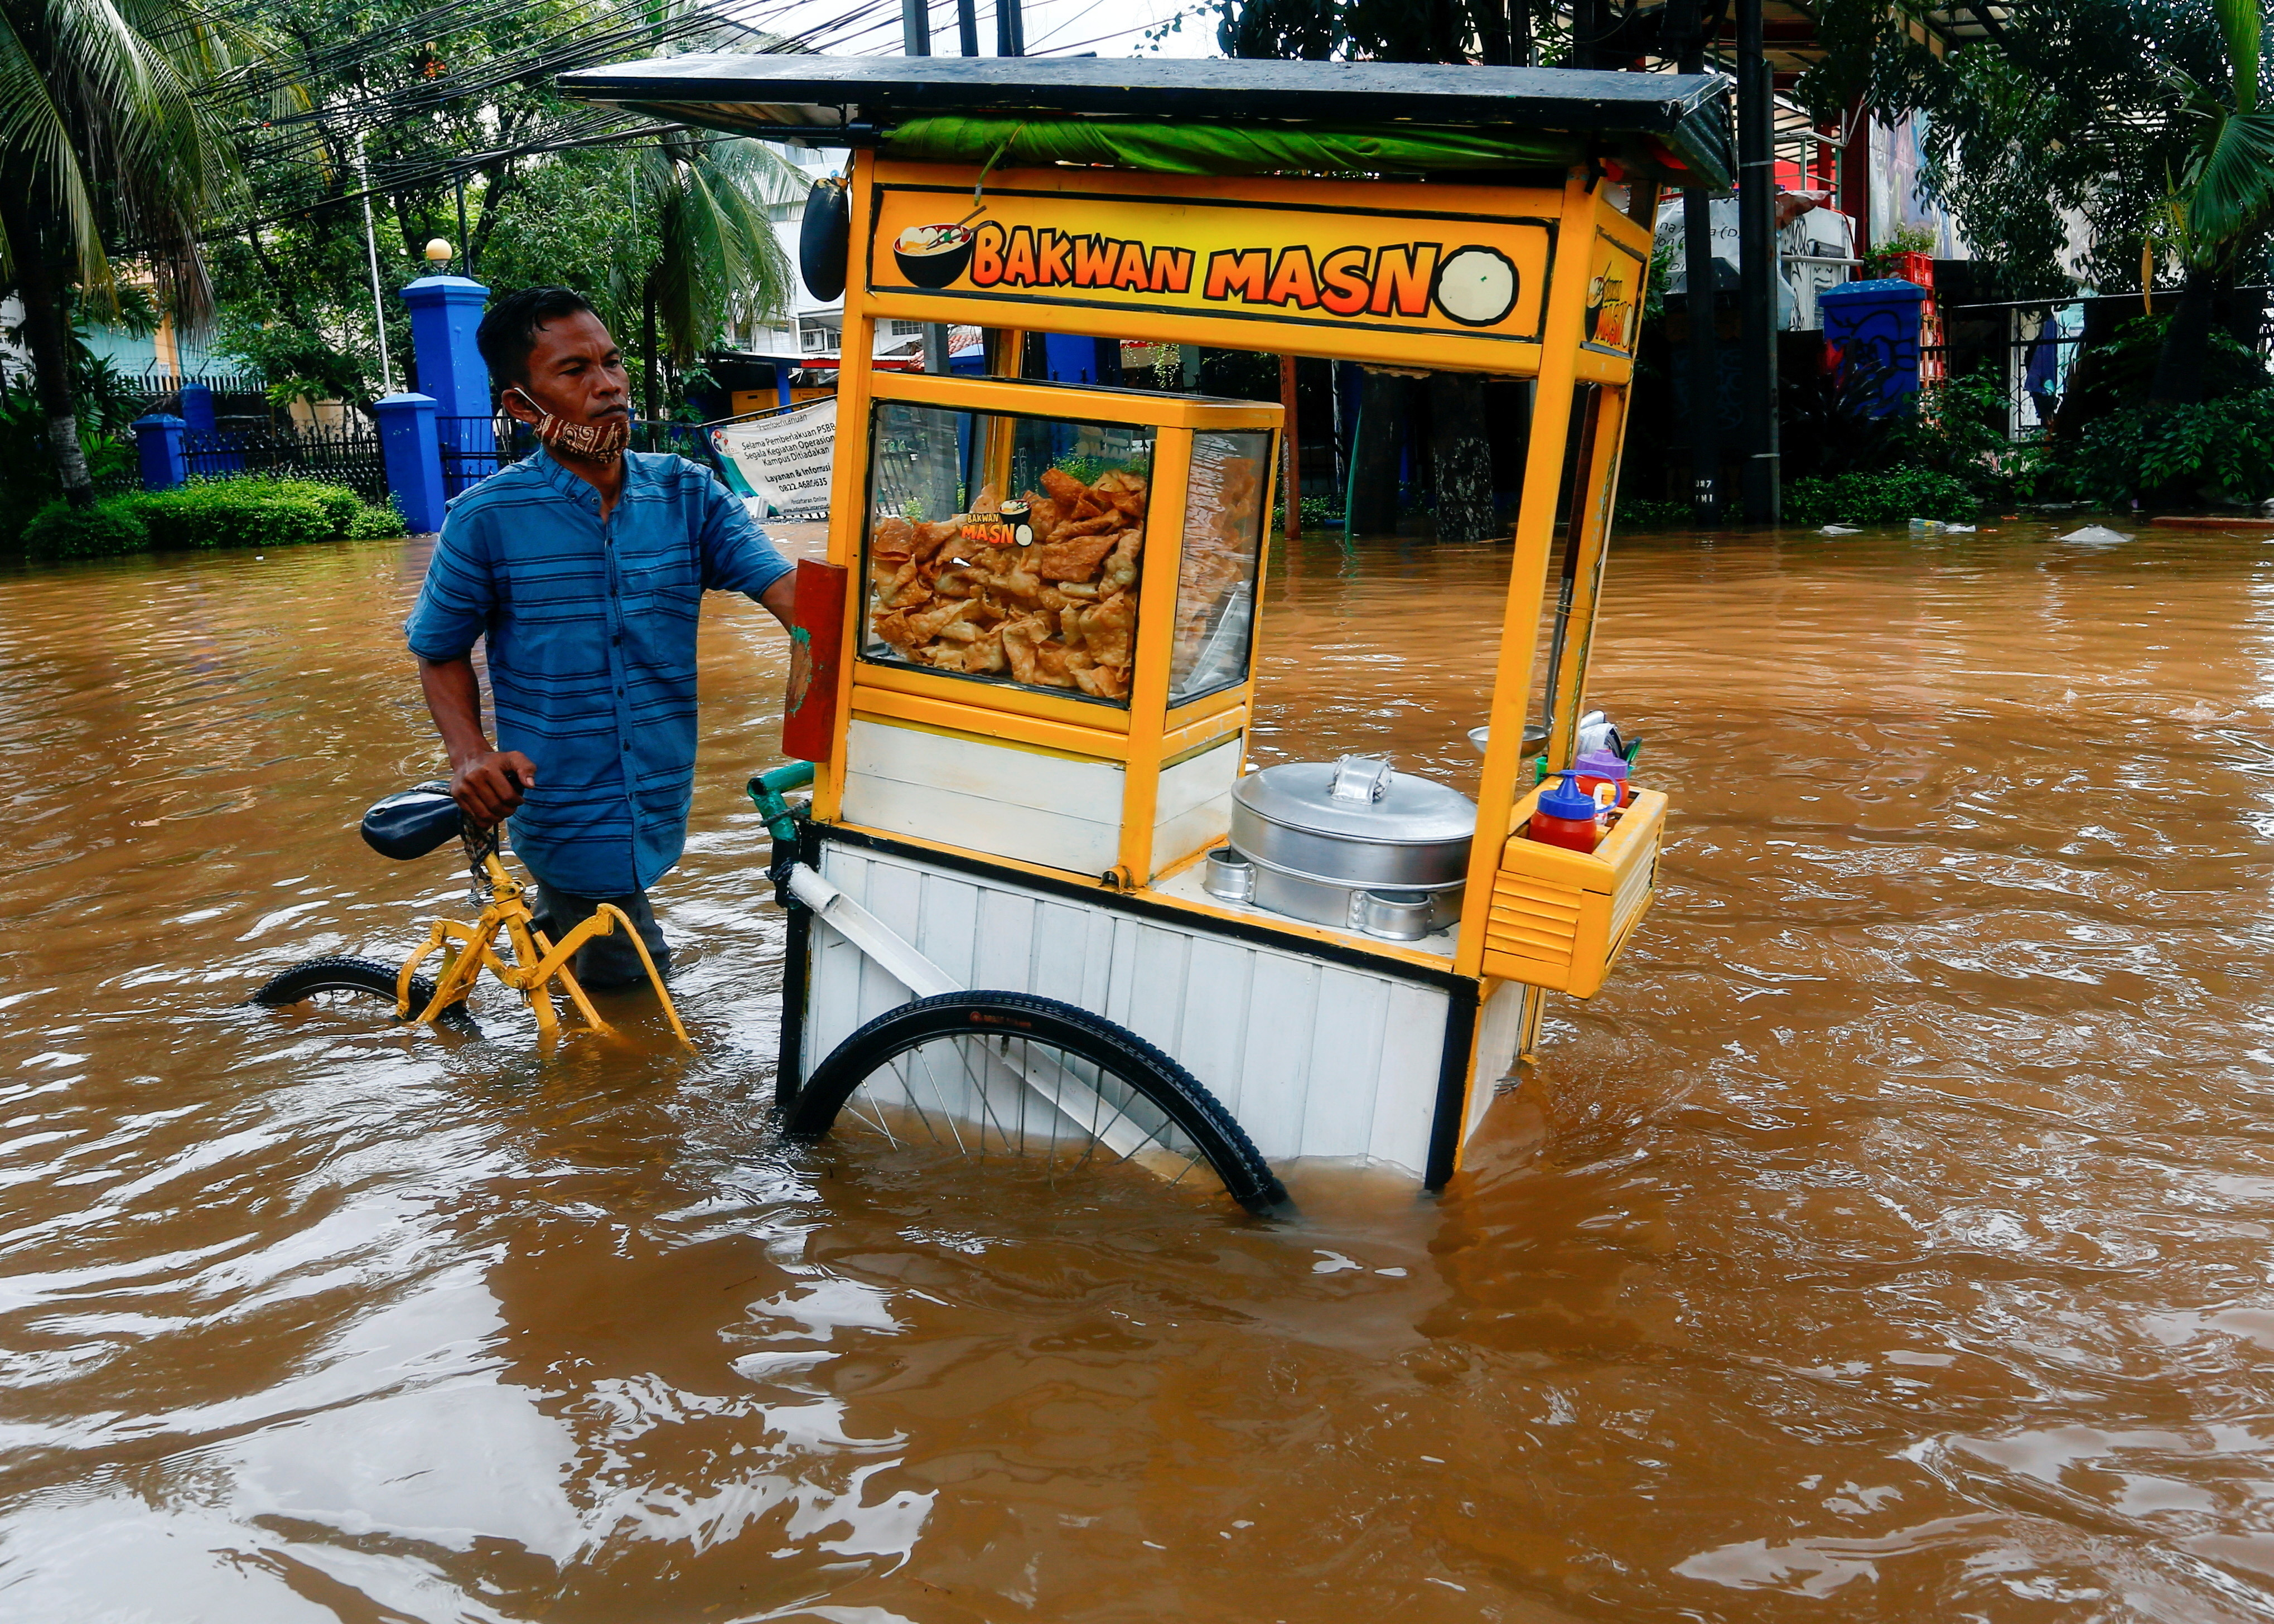 A street vendor pushes his cart through the water in an area affected by floods following heavy rains in Jakarta, Indonesia, February 20, 2021. REUTERS/Ajeng Dinar Ulfiana     TPX IMAGES OF THE DAY - RC27WL9PY0L8